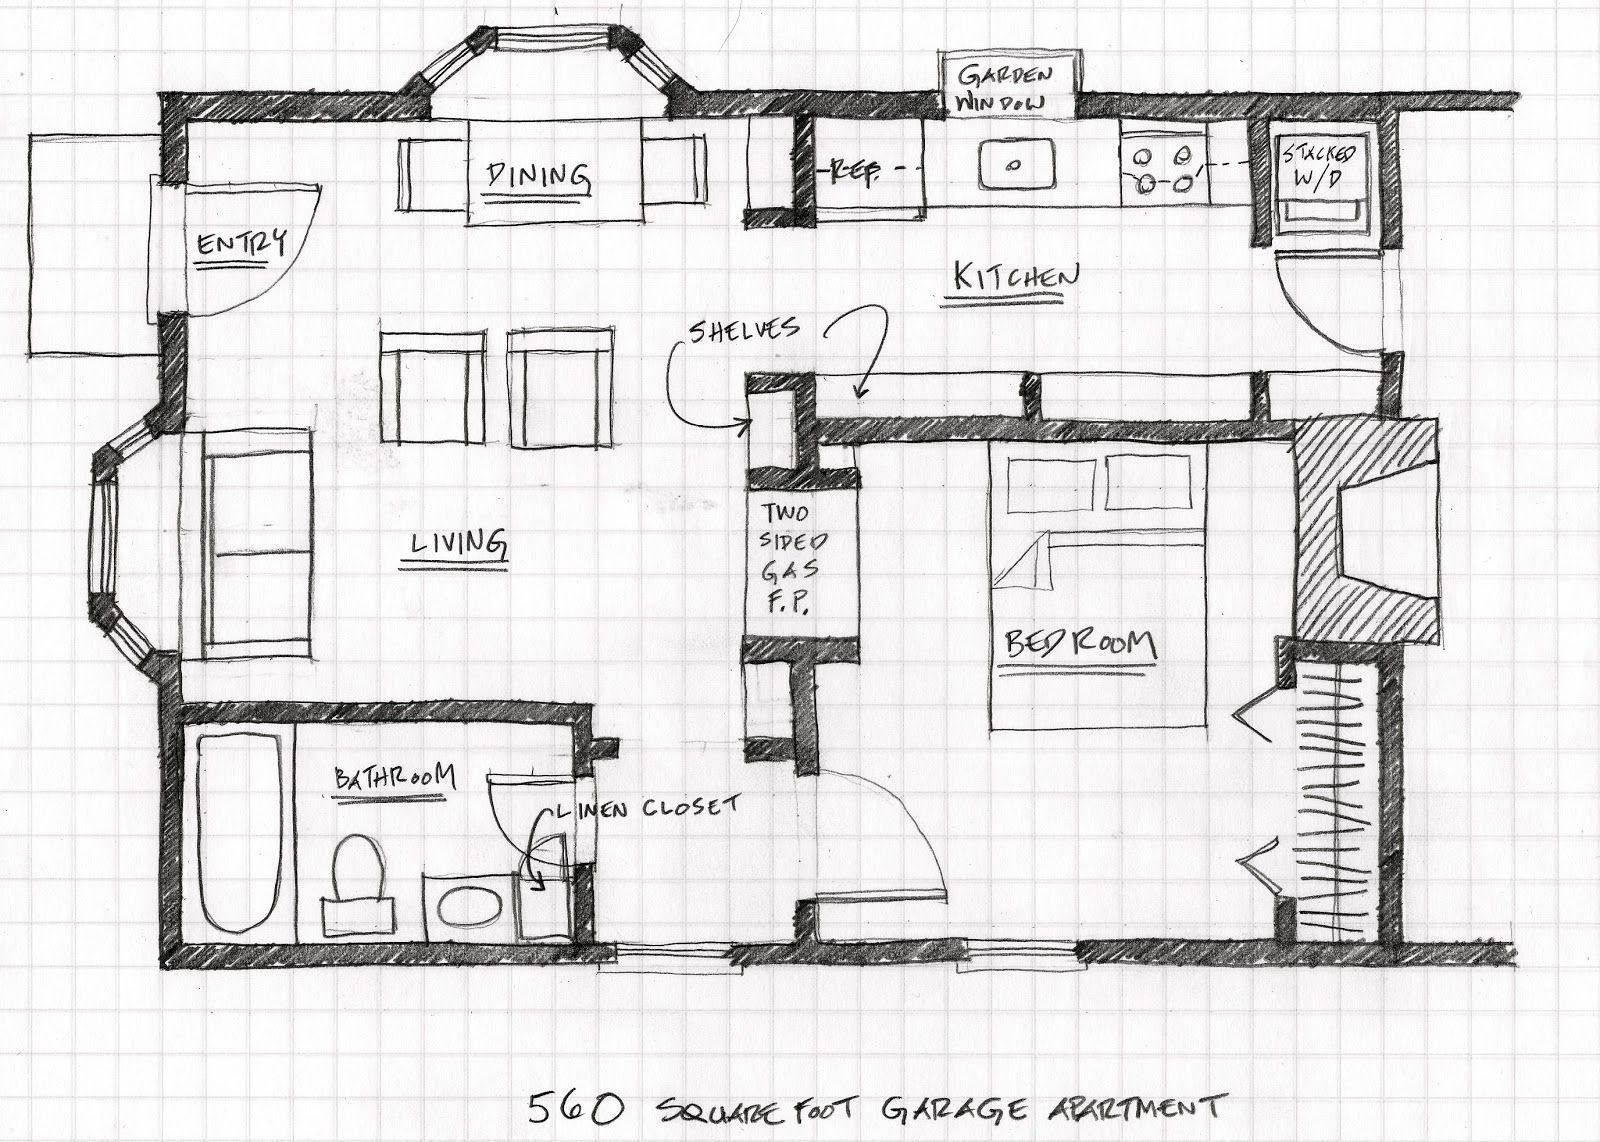 Small Scale Homes Floor Plans For Garage To Apartment Conversion Garage Floor Plans Floor Plans Garage House Plans